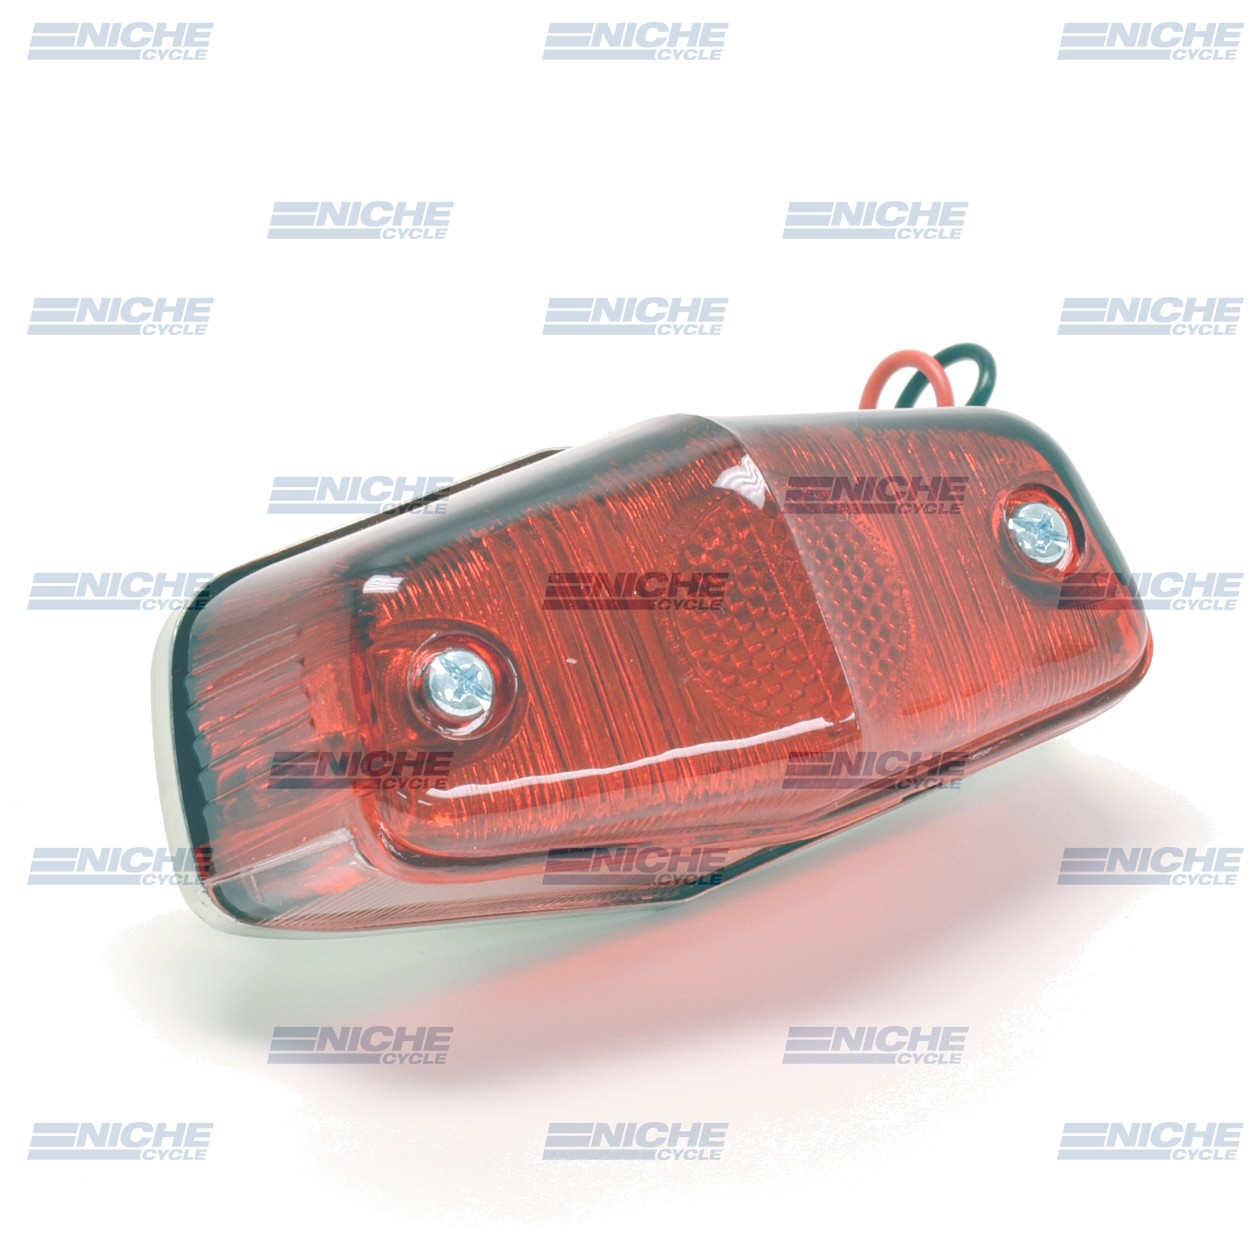 Triumph BSA Norton Matchless Lucas-Style 12-Volt Taillight No Bracket 62-21522